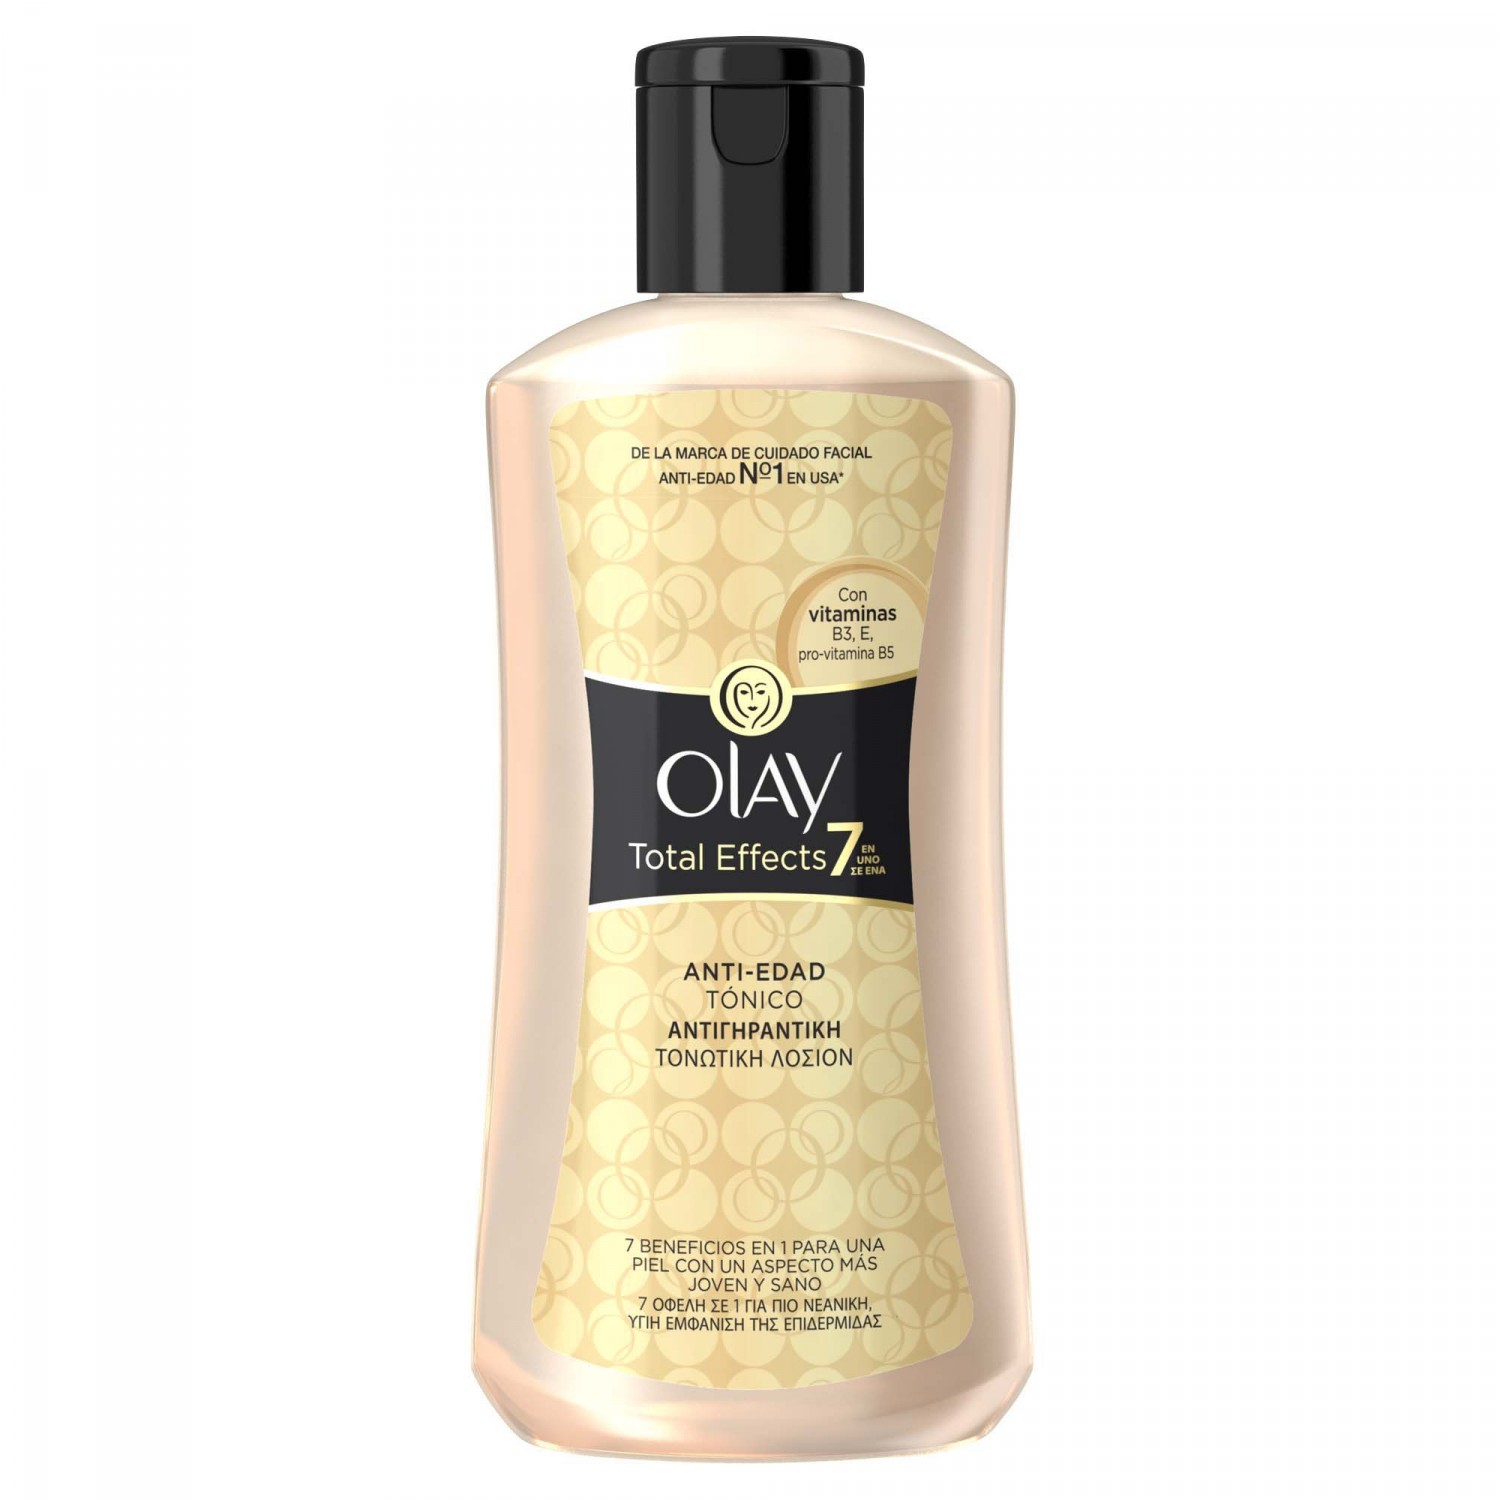 Olay tot effects tonico antiedad 7 en 1 de 20cl. en bote